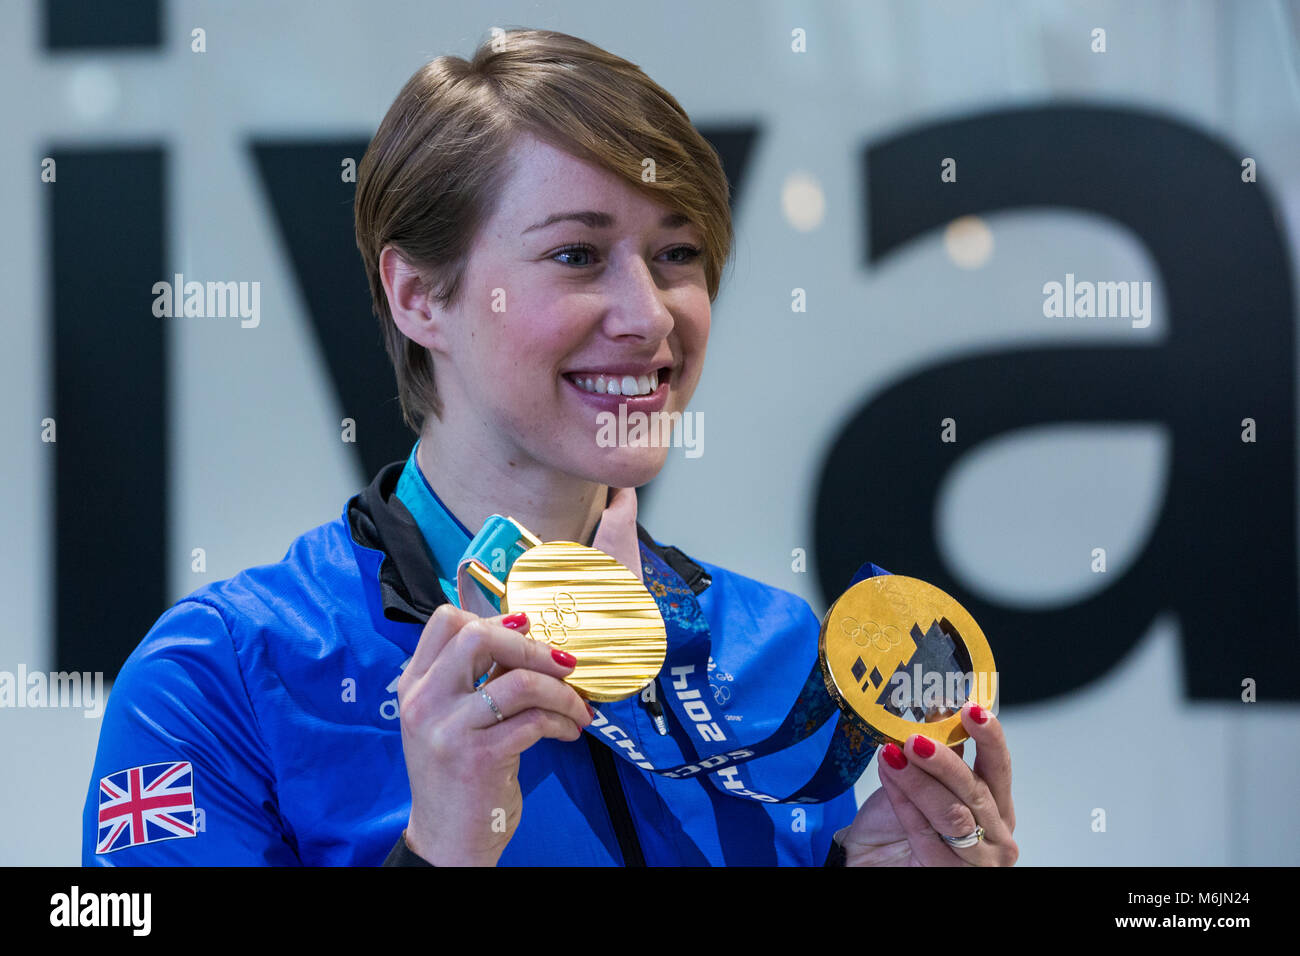 London, UK. 26th February, 2018. Lizzy Yarnold displays the women's skeleton gold medals which she won at Pyeongchang - Stock Image